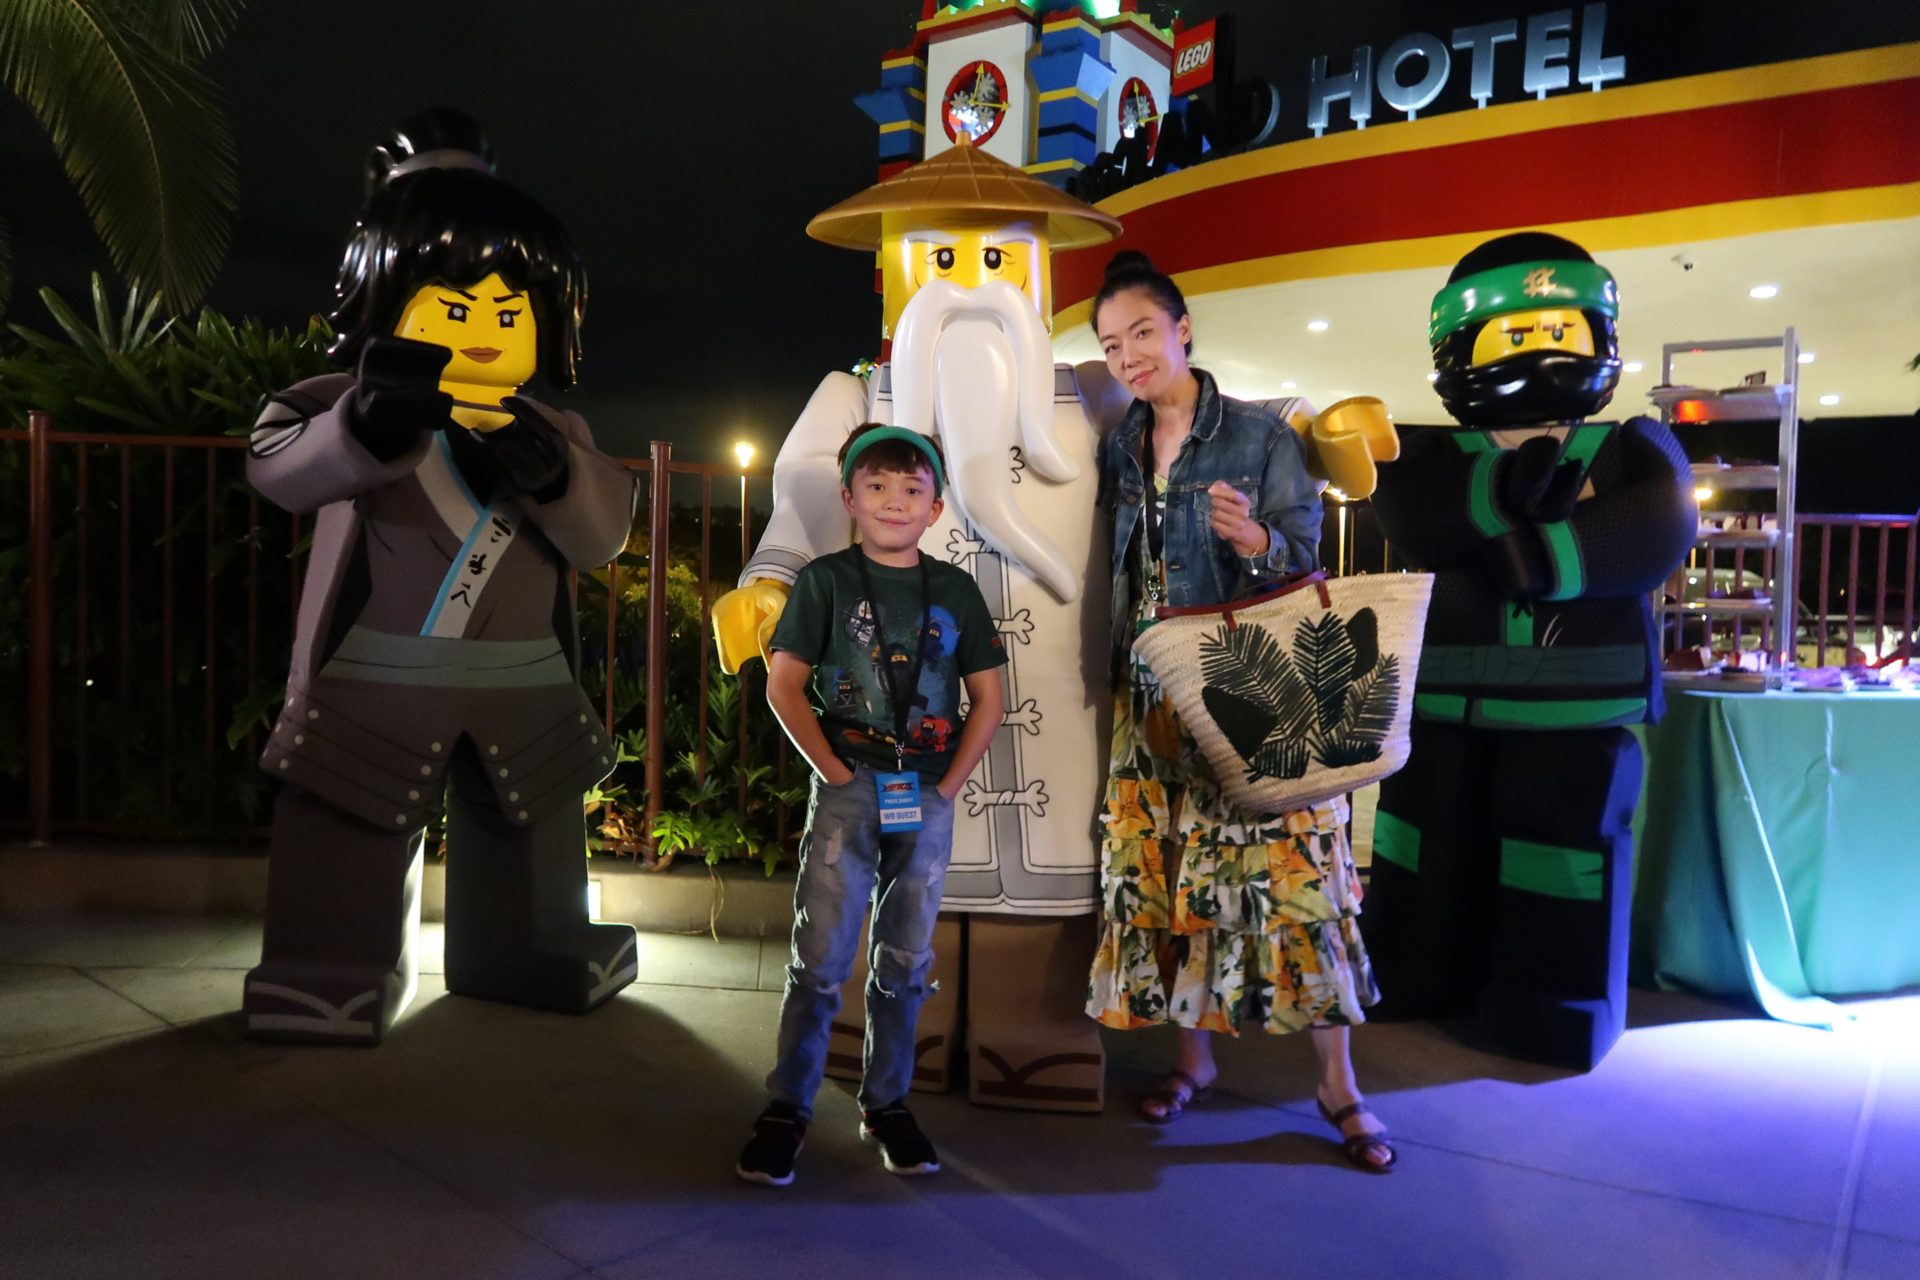 What I Learned From the LEGONINJAGOMovie | Hallie Daily